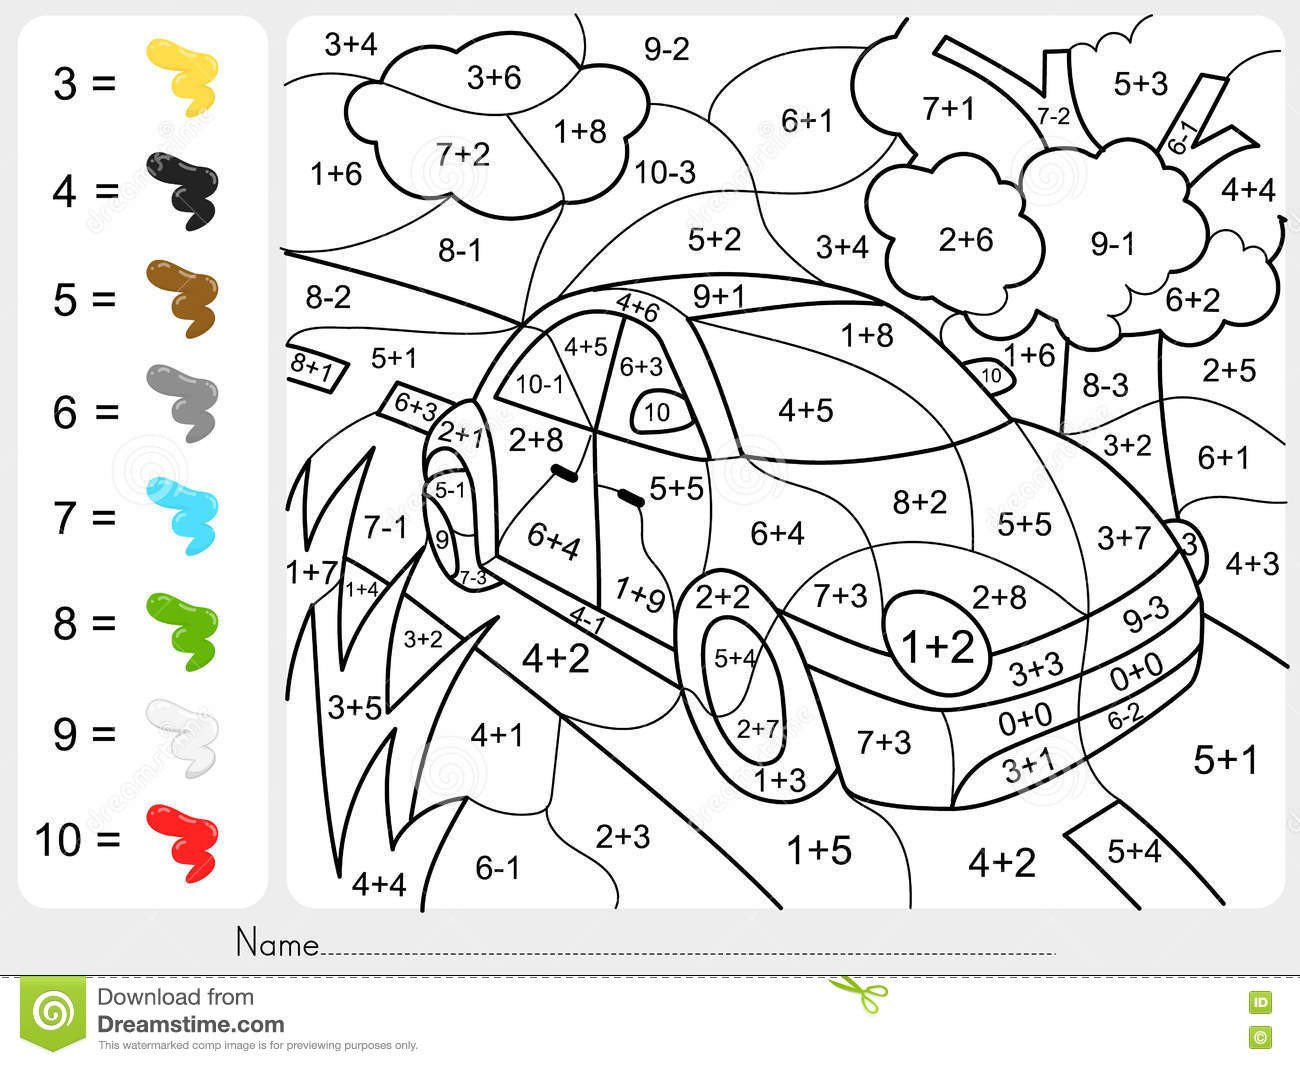 free color by number online games addition printables coloring sheets paint play